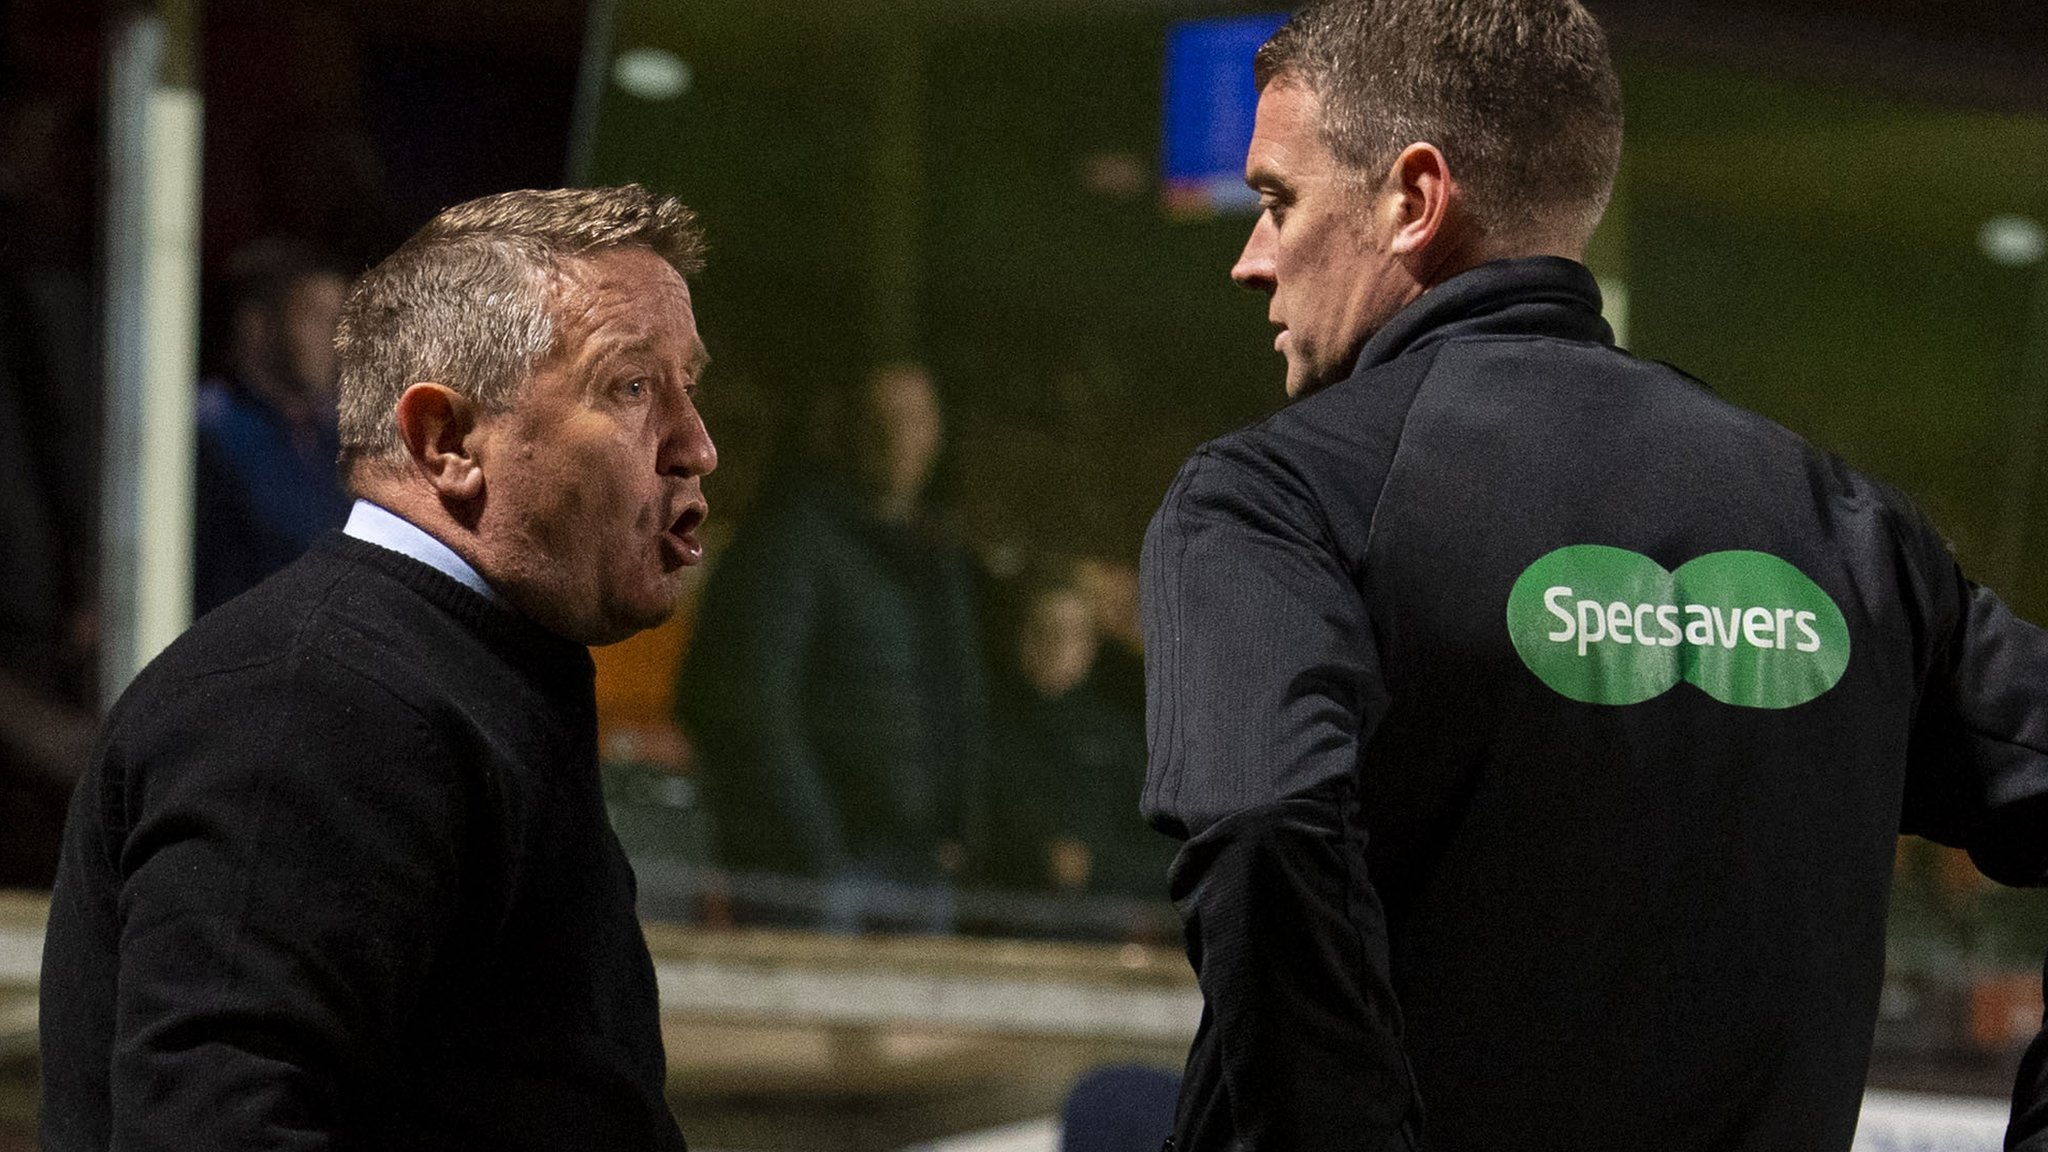 'Arrogant officials are a disgrace' - Robertson enraged after play-off defeat